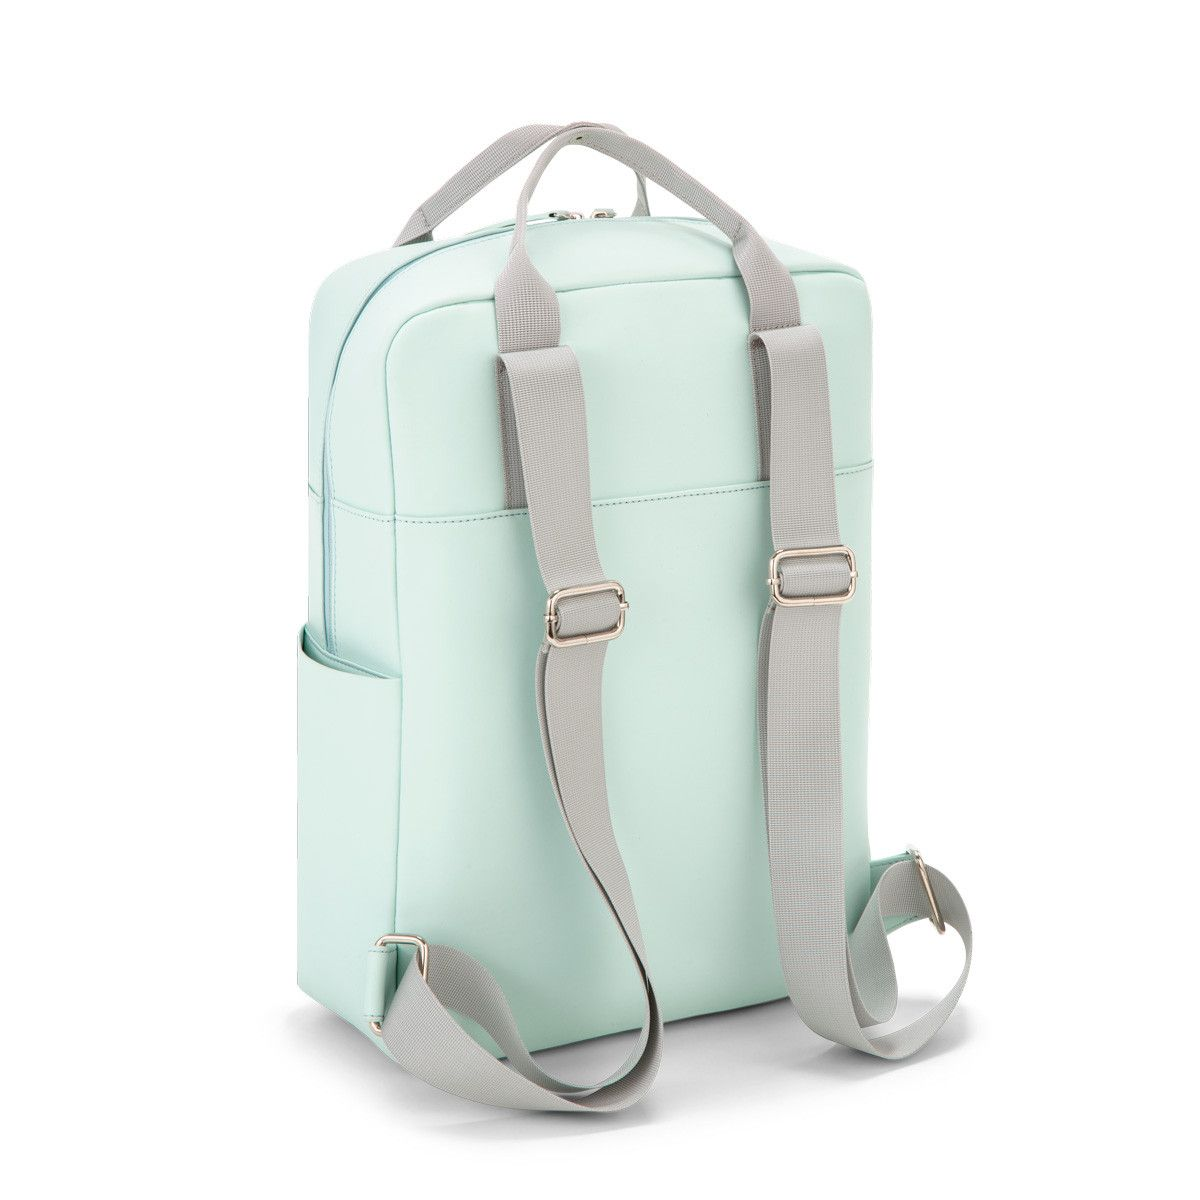 Pin By Ii I On 後背包 In 2020 Unique Backpacks Mint Backpack Classic Backpack